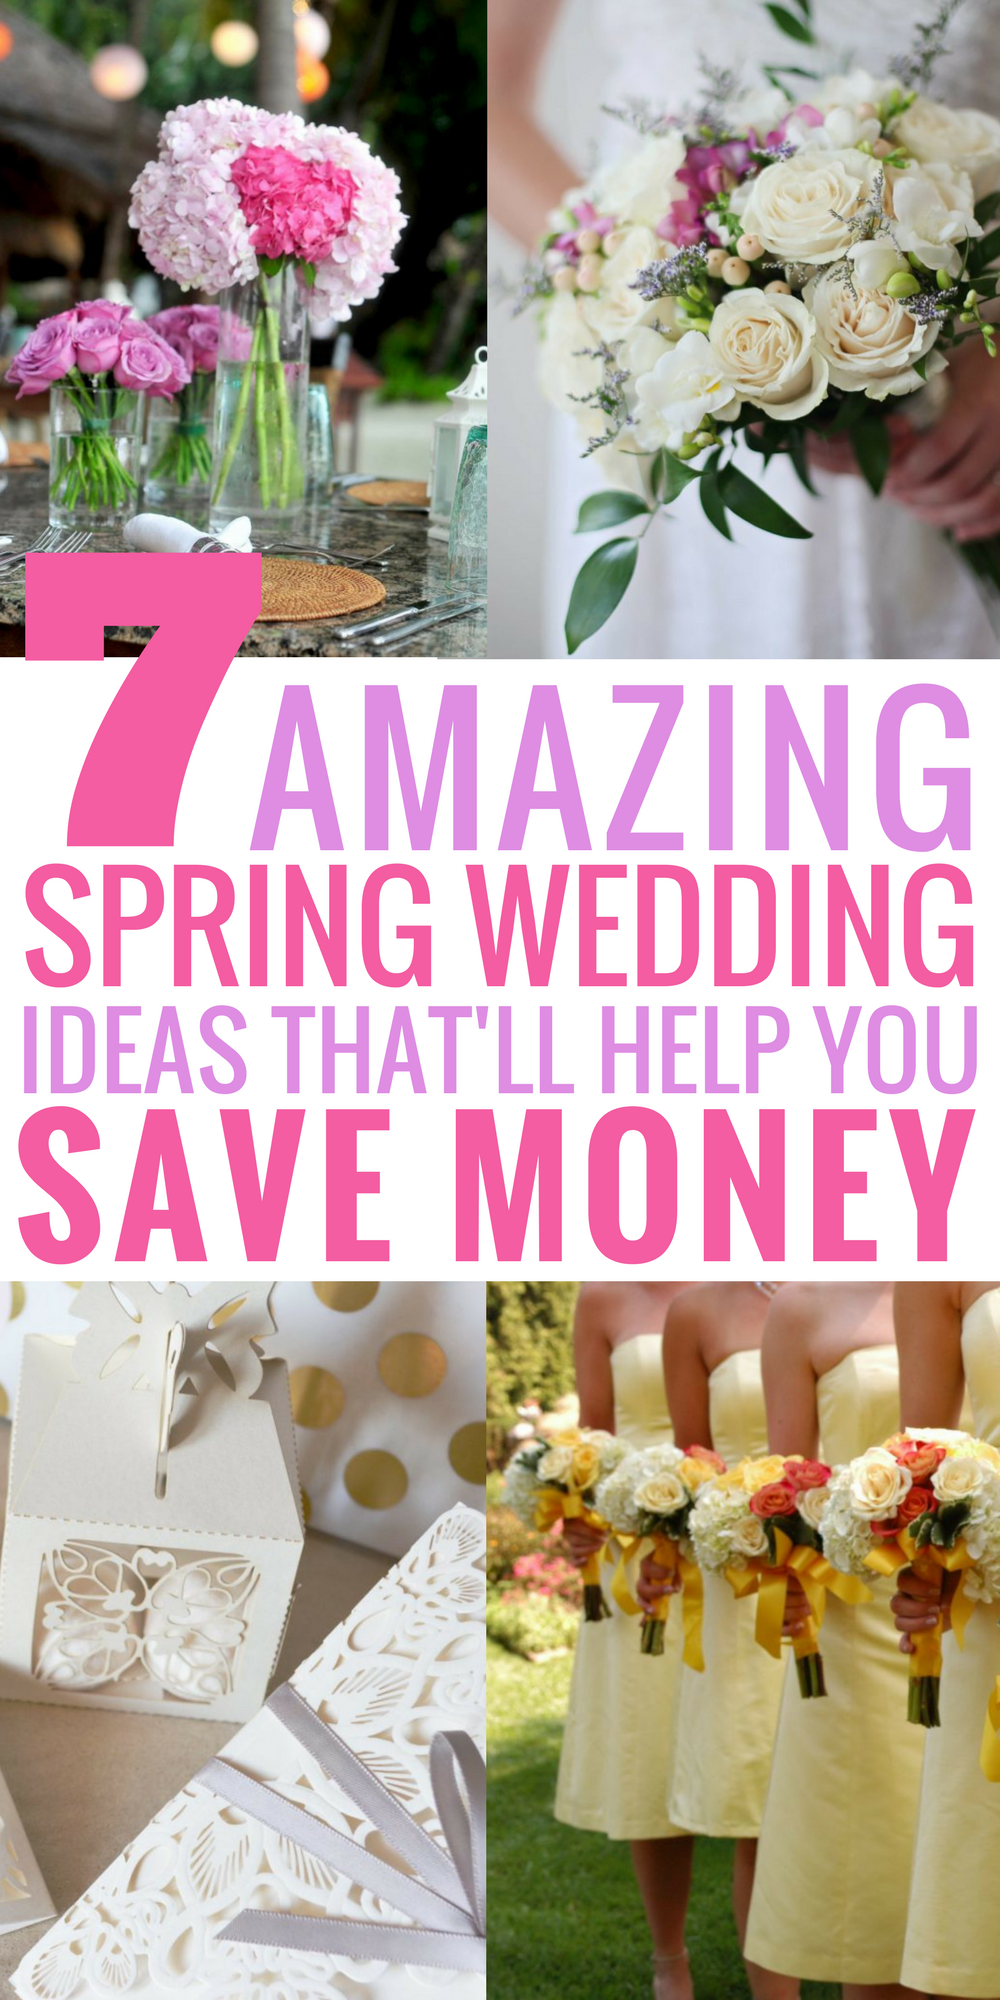 Visit The Webpage To Learn More On Frugal Wedding Diy Please